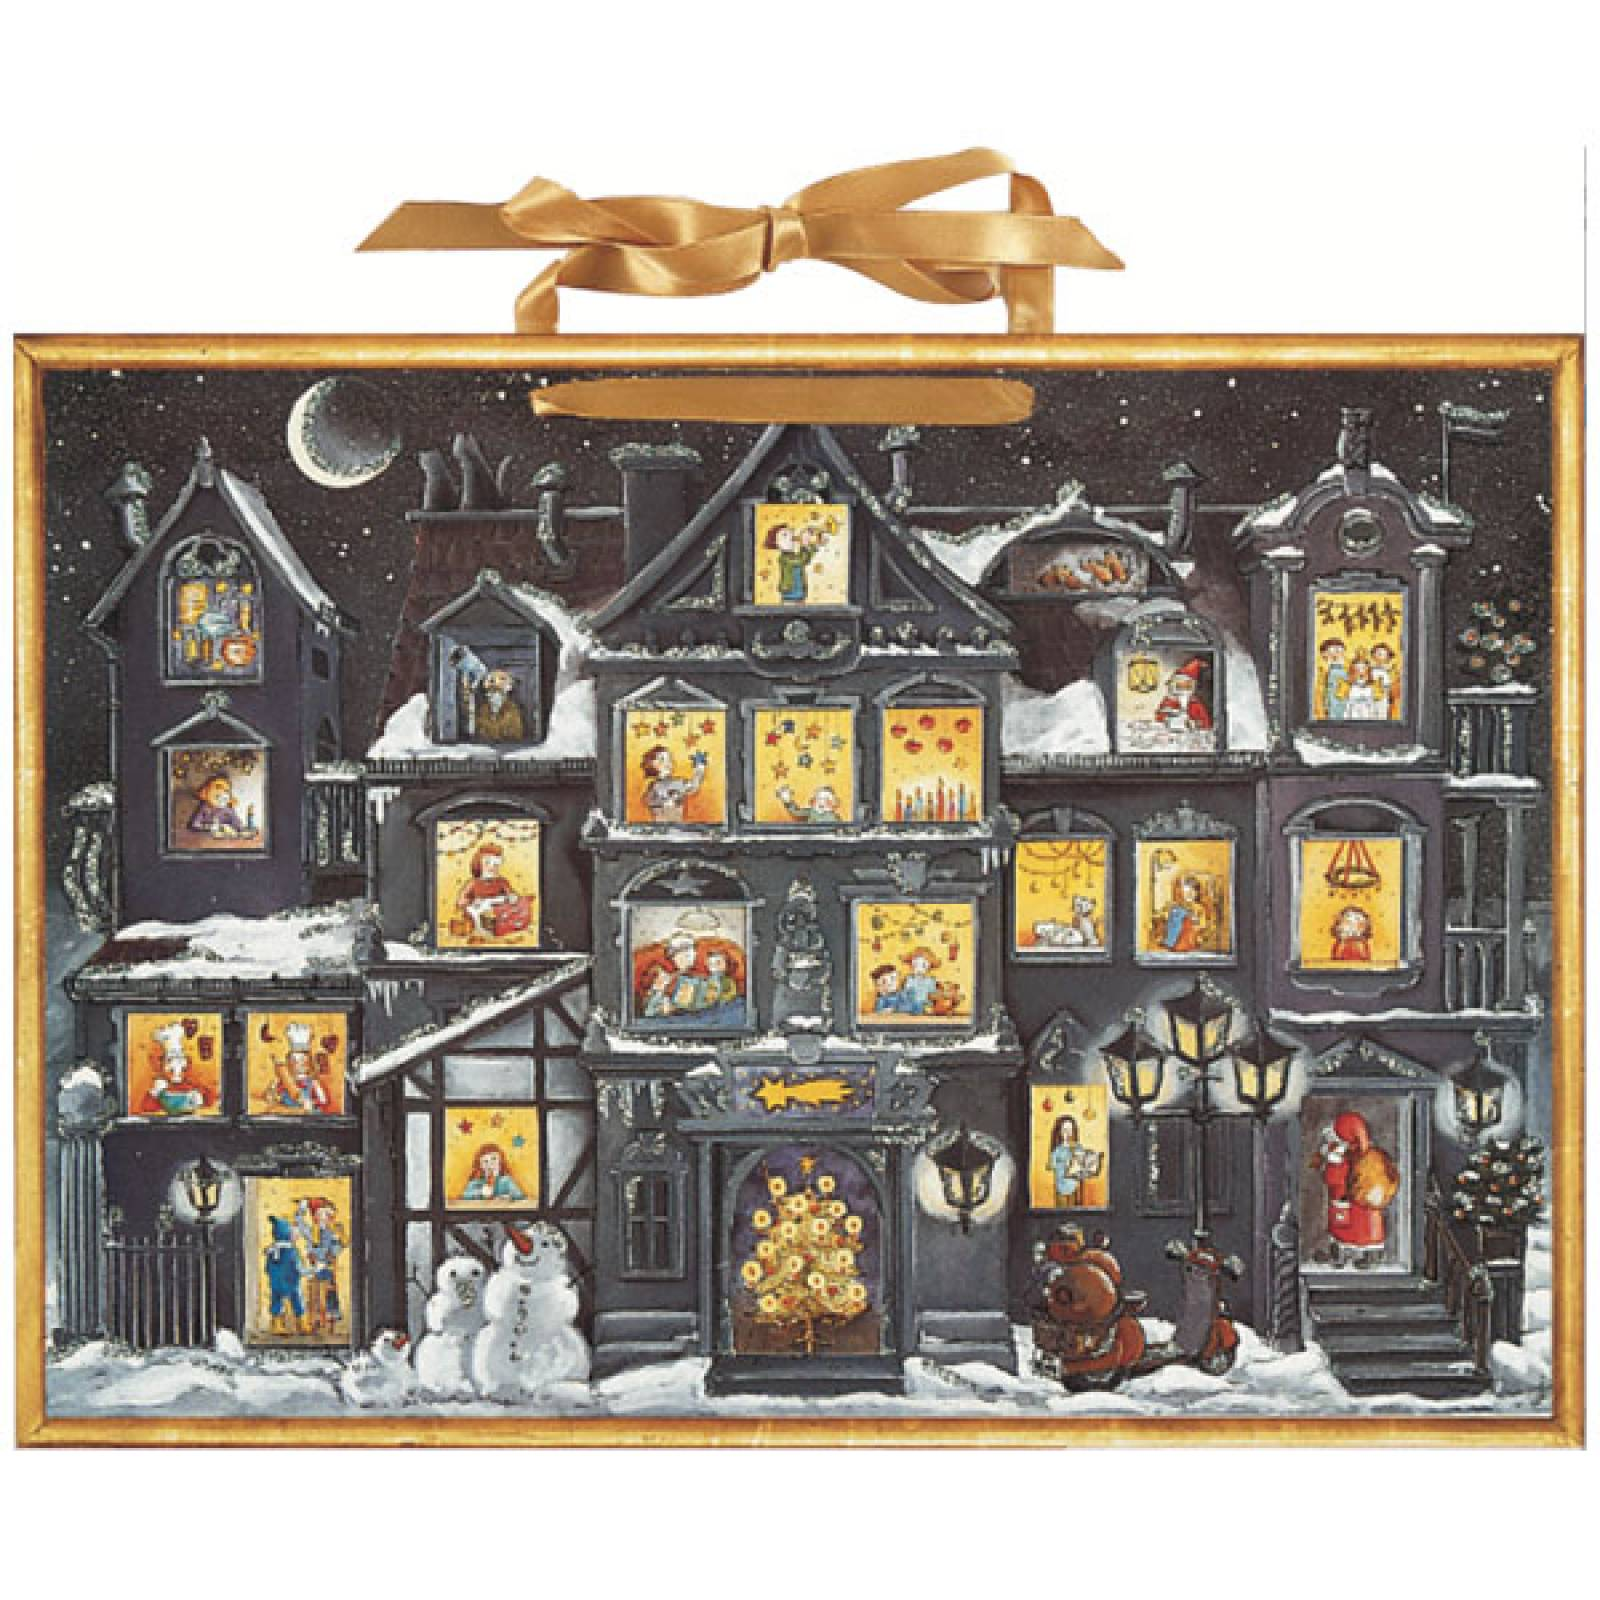 The Christmas House At Night Advent Calendar (Colourful Inside) thumbnails